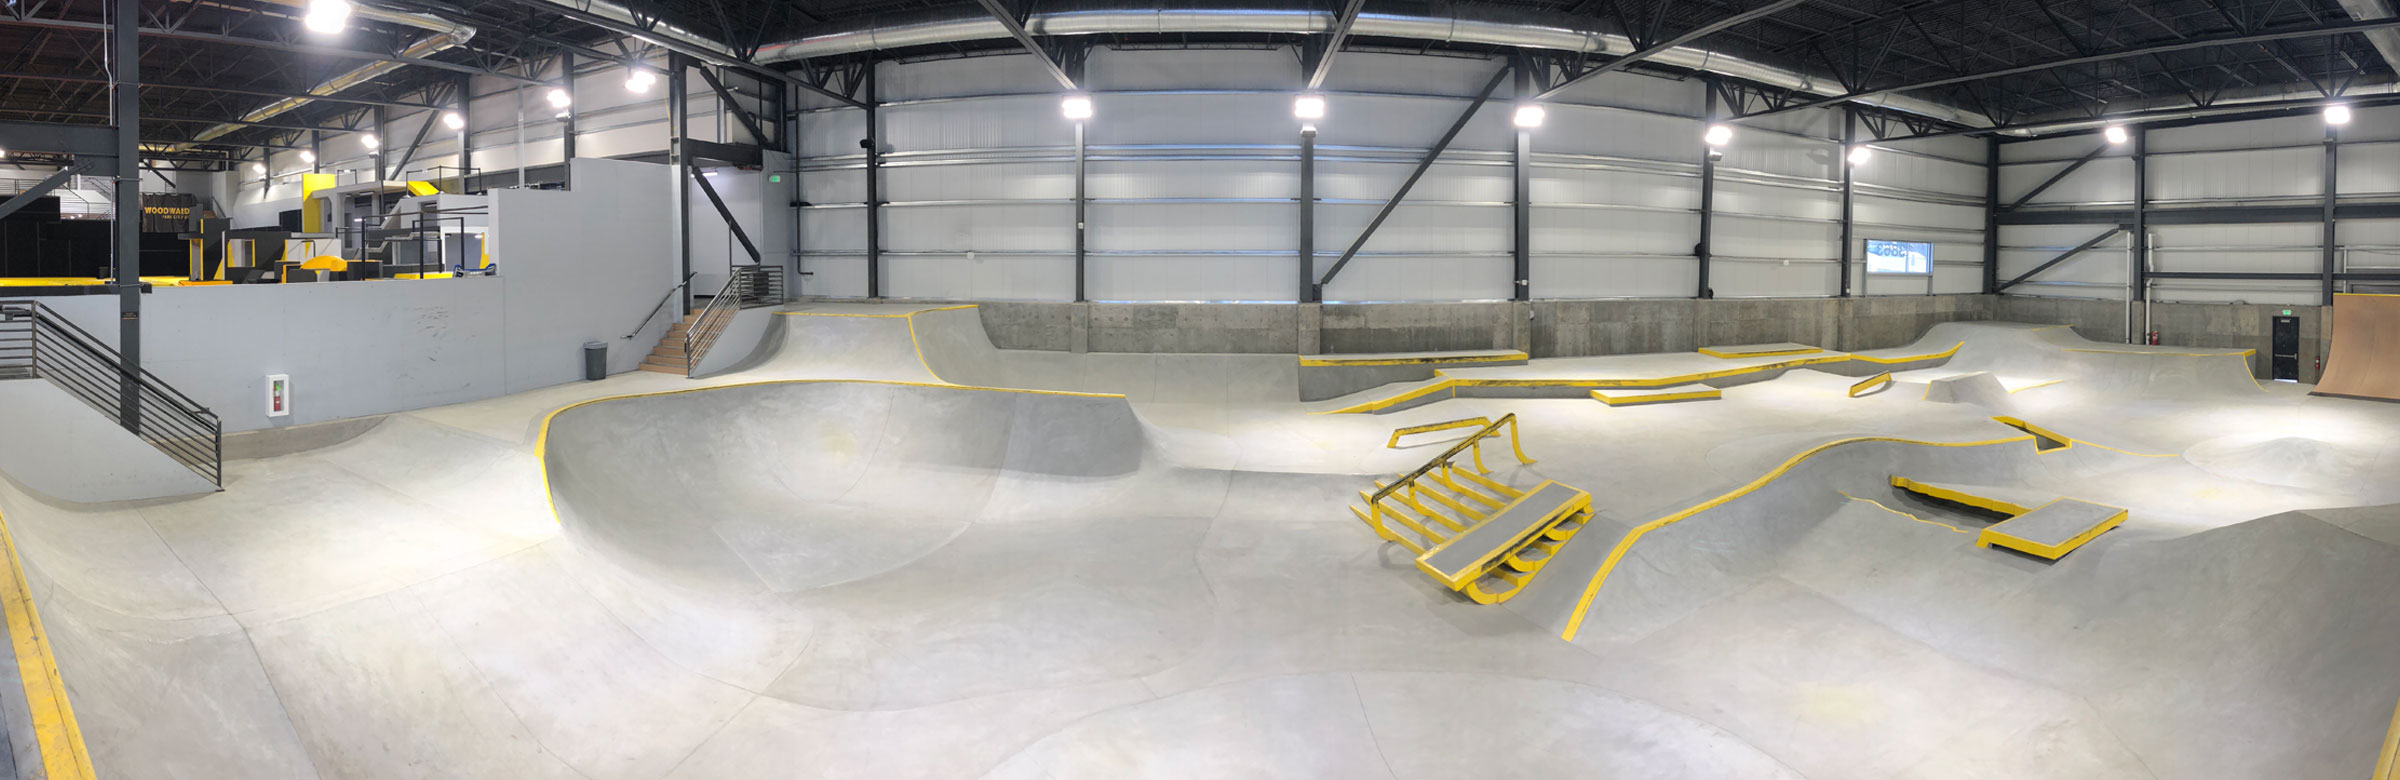 Woodward Park City's indoor bike and skate park